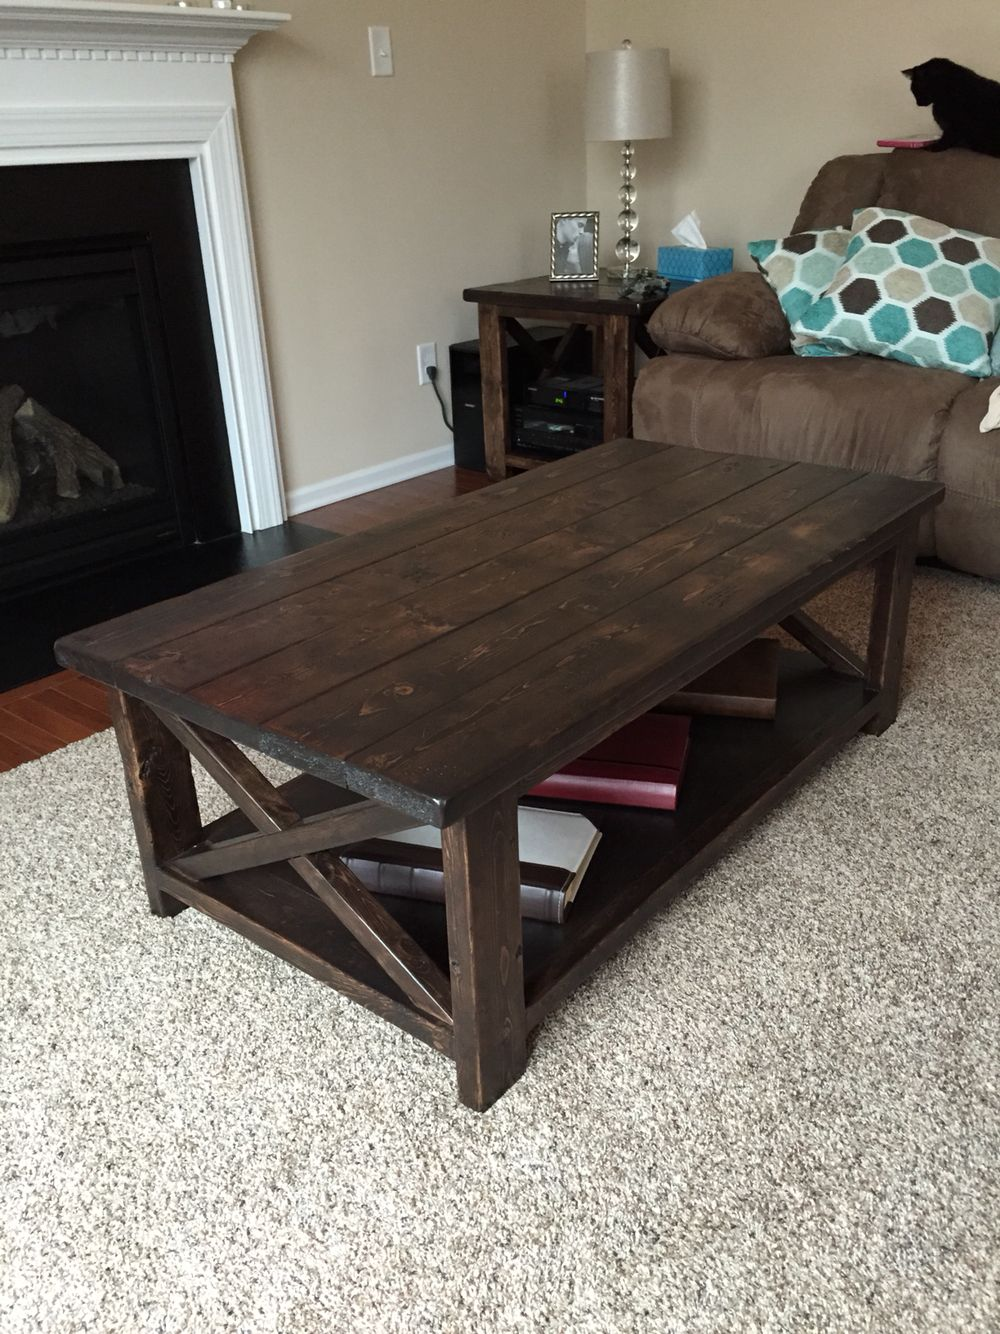 Rustic X coffee table built from Ana White plans. Assembled using Kreg  Pocket Screw Jig - Rustic X Coffee Table Built From Ana White Plans. Assembled Using